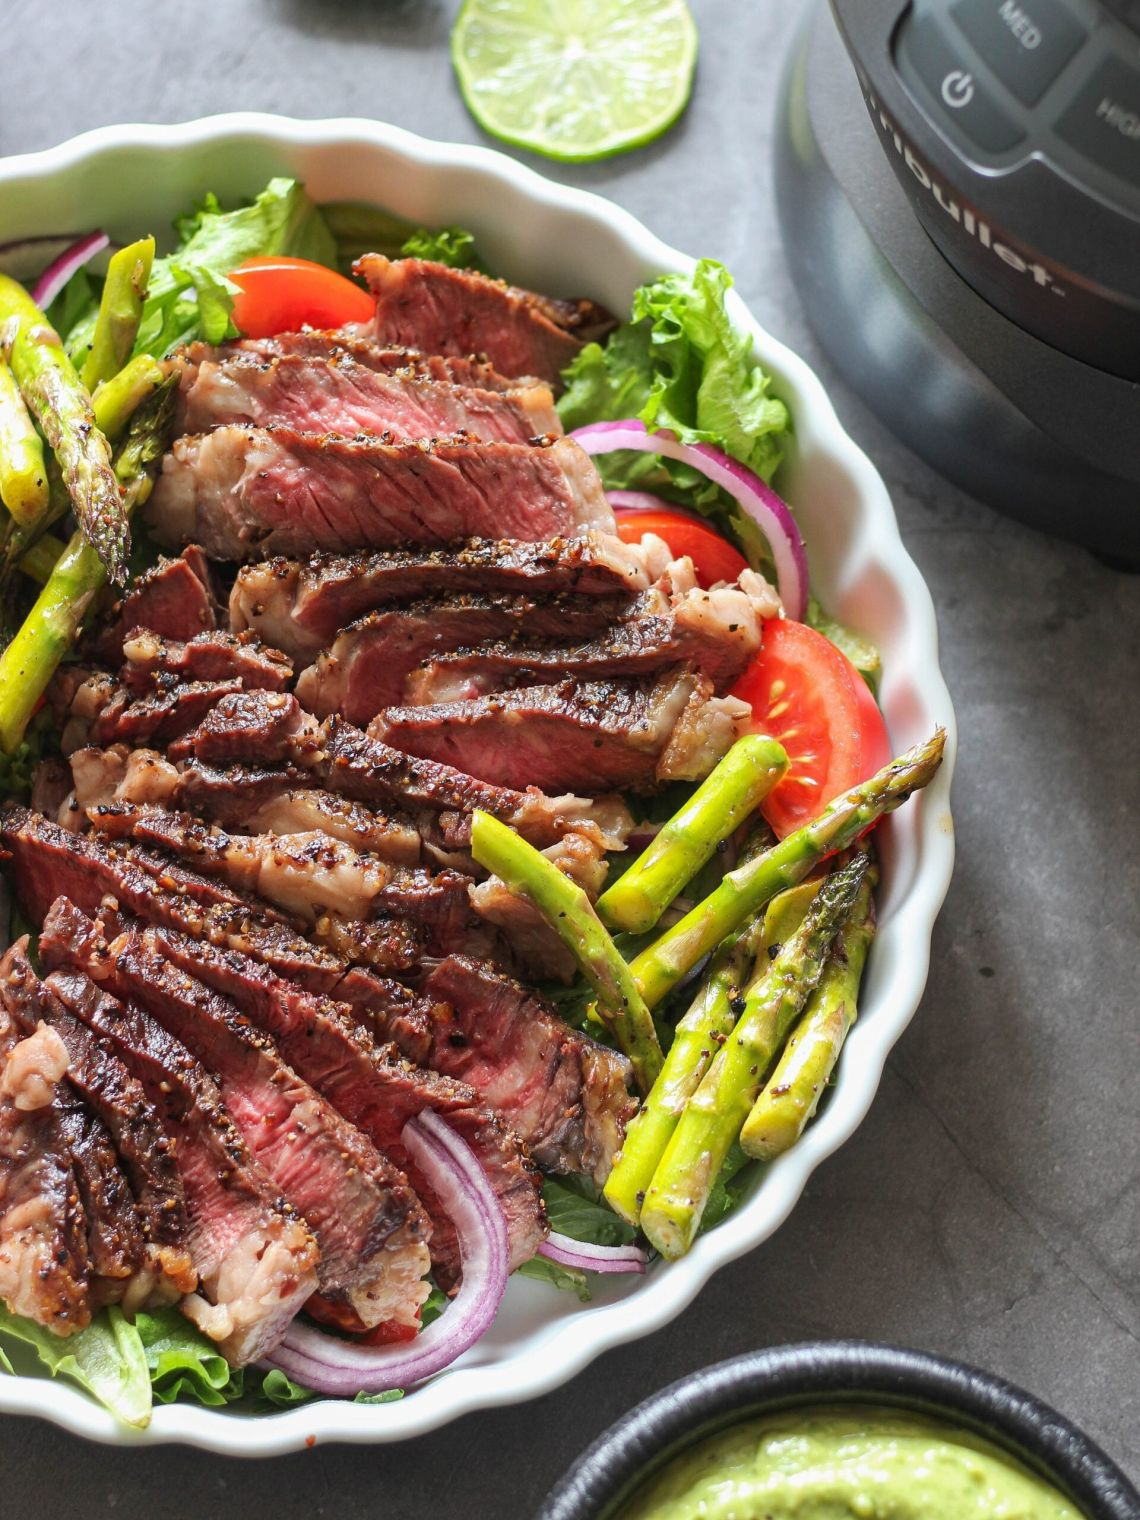 Steak Salad with Creamy Herb Sauce from Clean Foodie Cravings